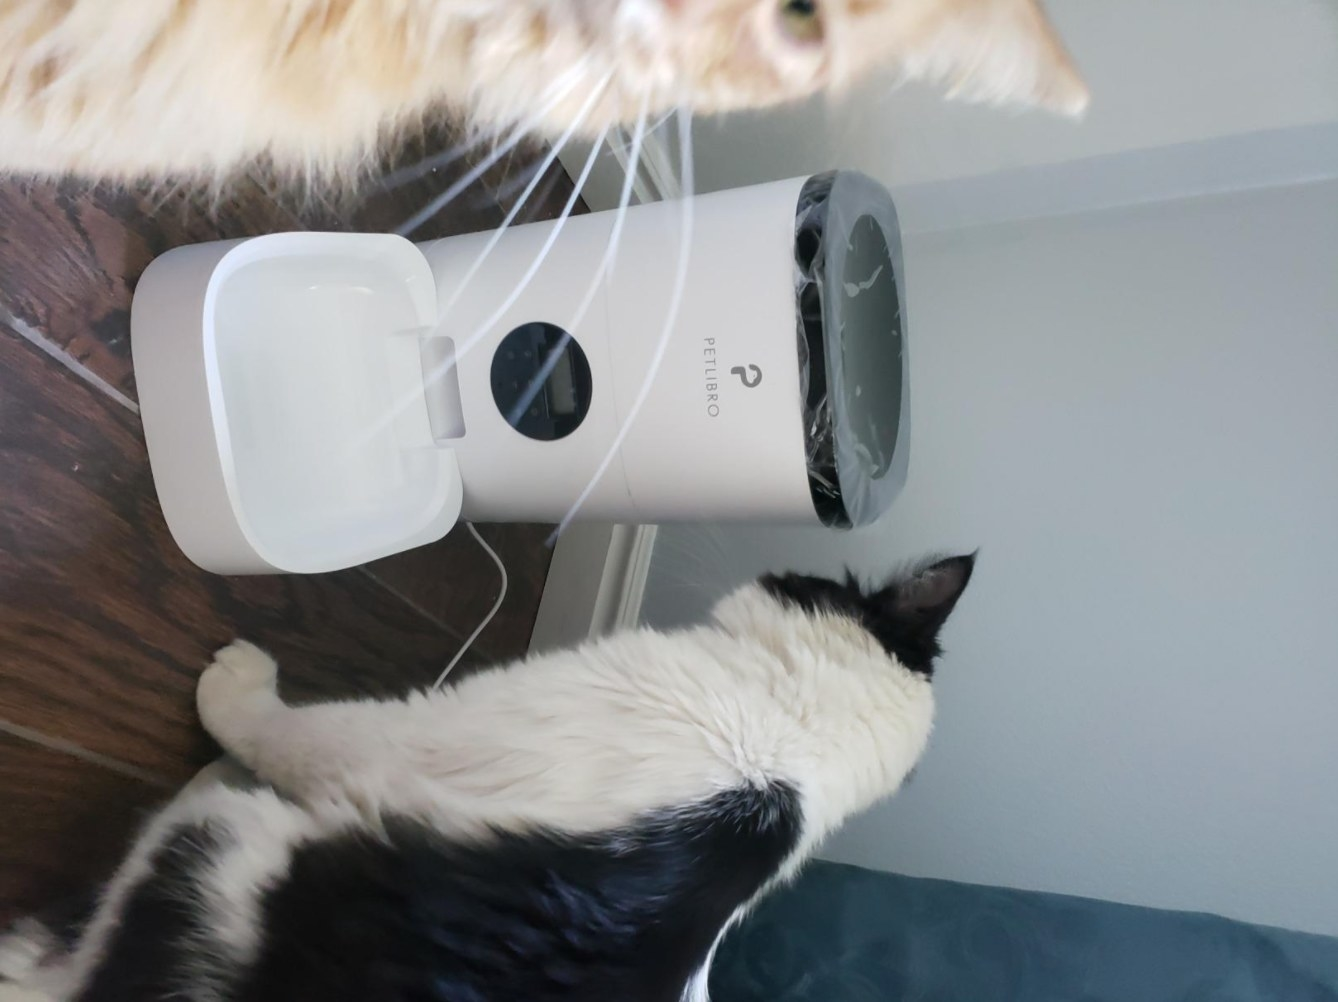 A reviewer's photo of their cats with the automatic pet feeder in white